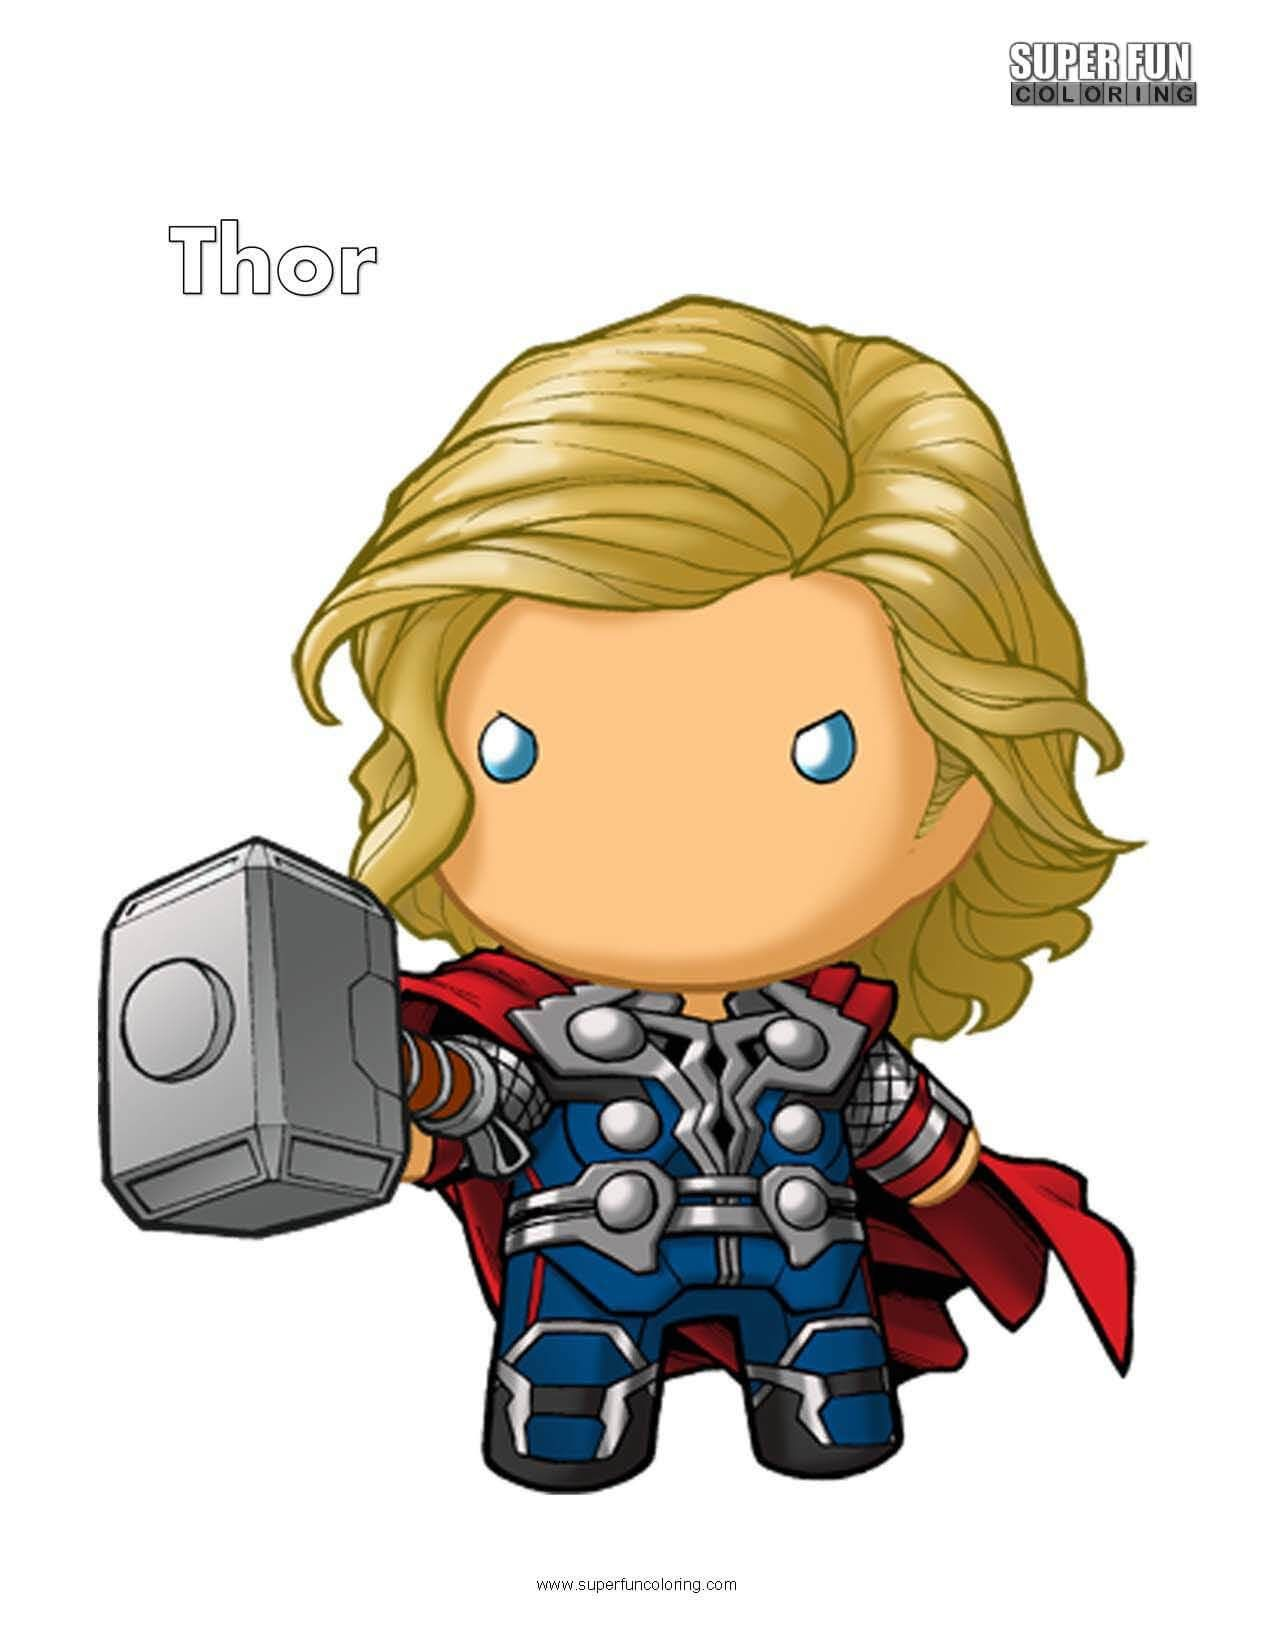 Cute Thor Free Superhero Coloring Page | Super Fun Coloring Pages ...